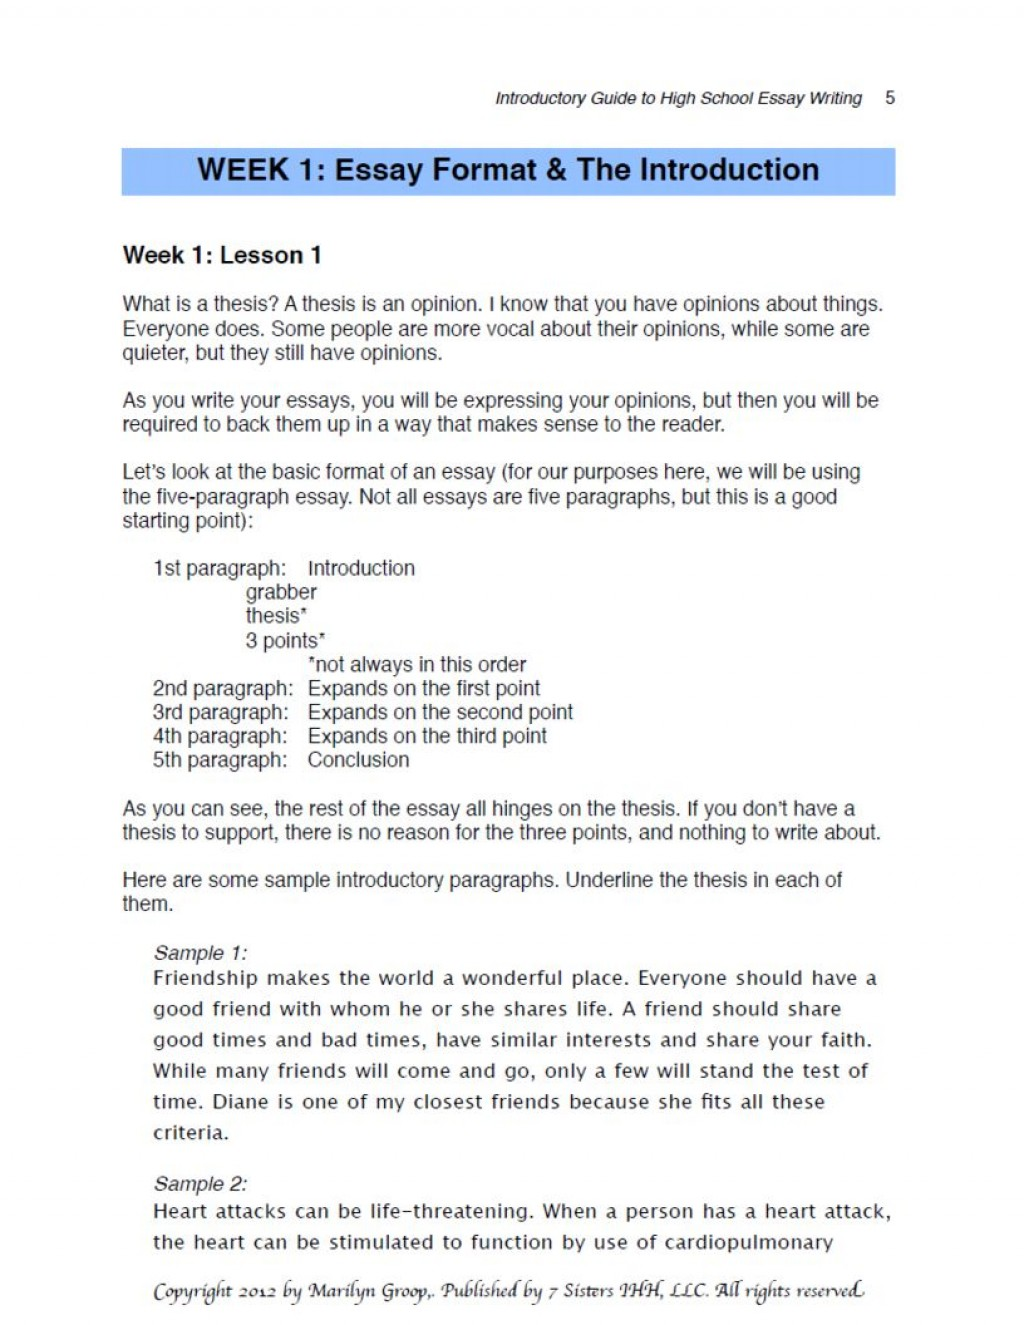 005 Uncategorized20riendship Essays True Examples In Hindi Writing Effective Thesis Statements Point Statement Research Stupendous 3 Large